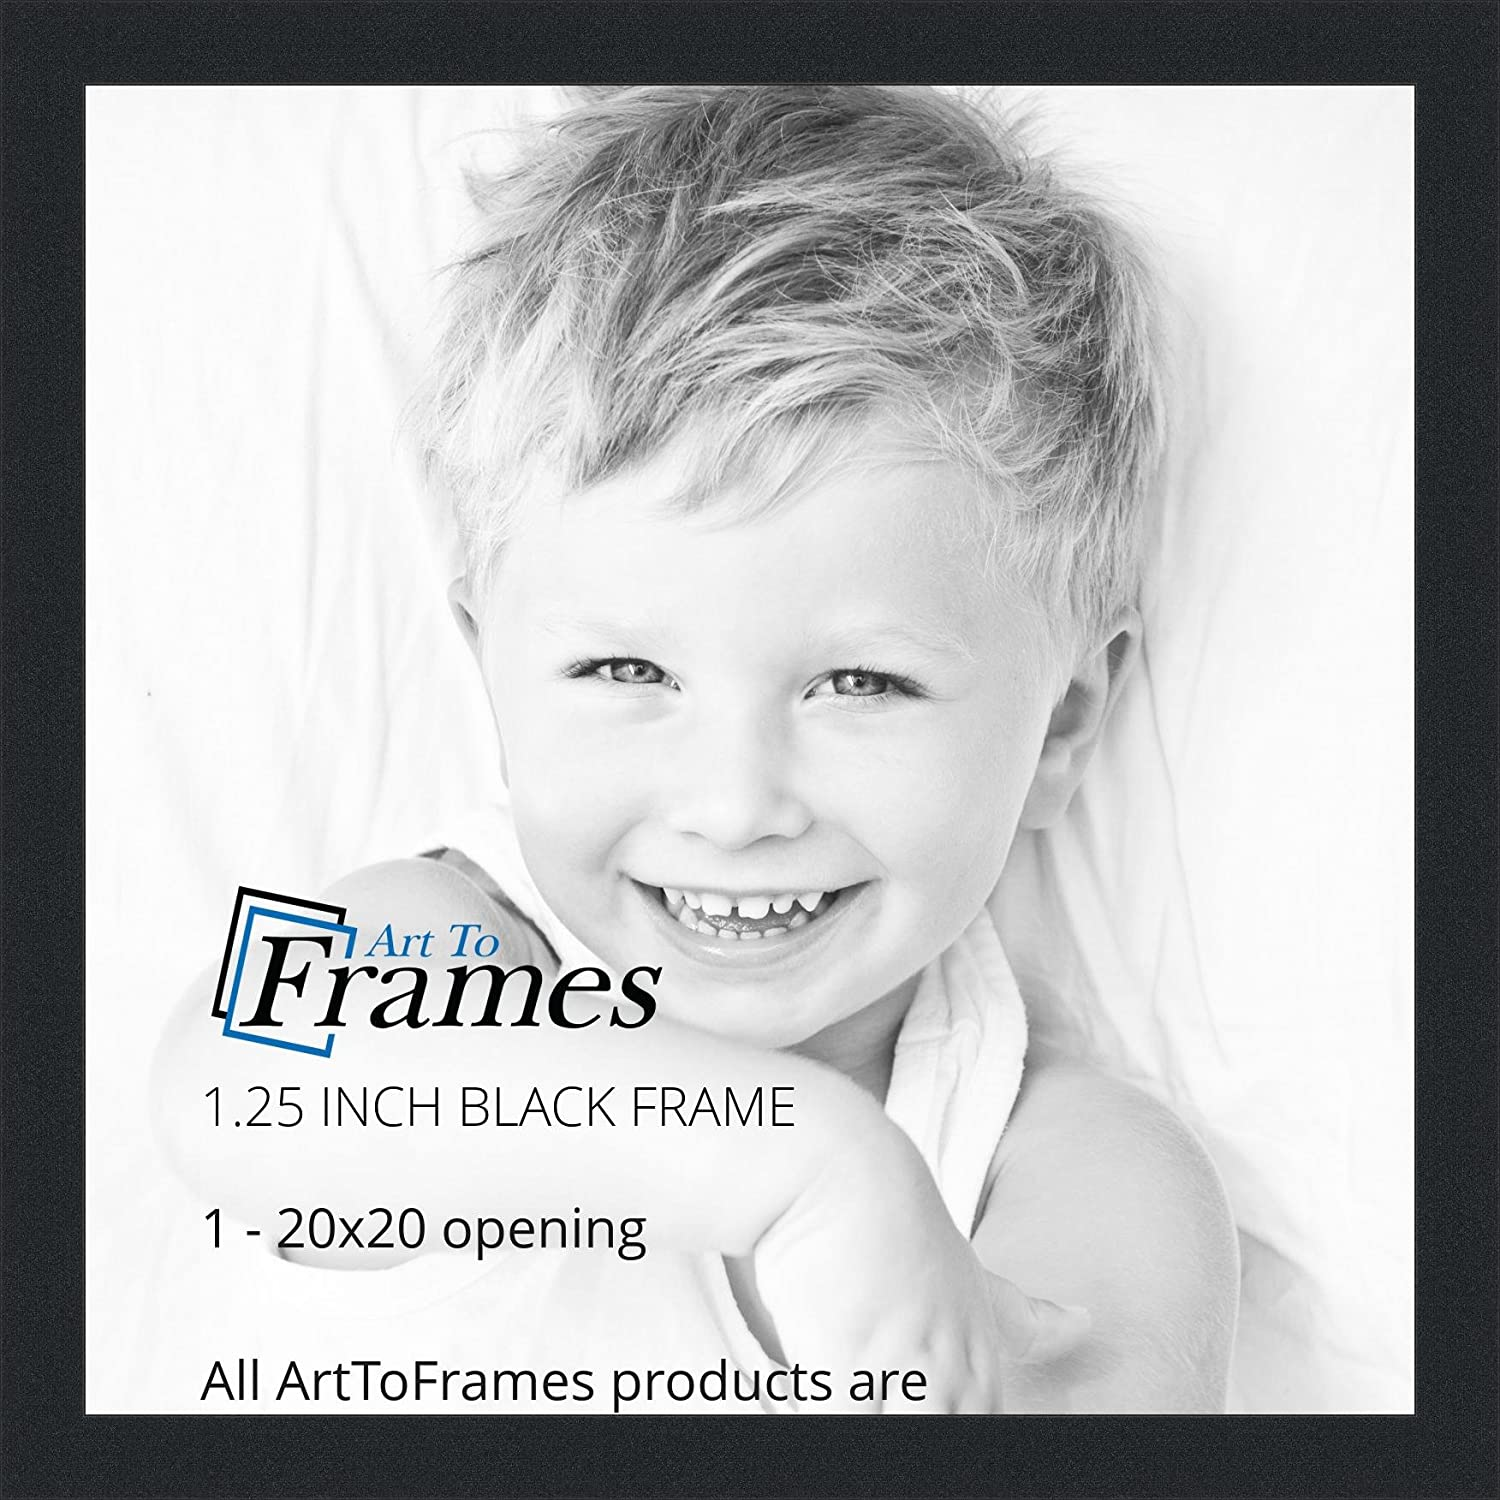 Amazon.com - ArtToFrames 20x20 inch Black Picture Frame ...